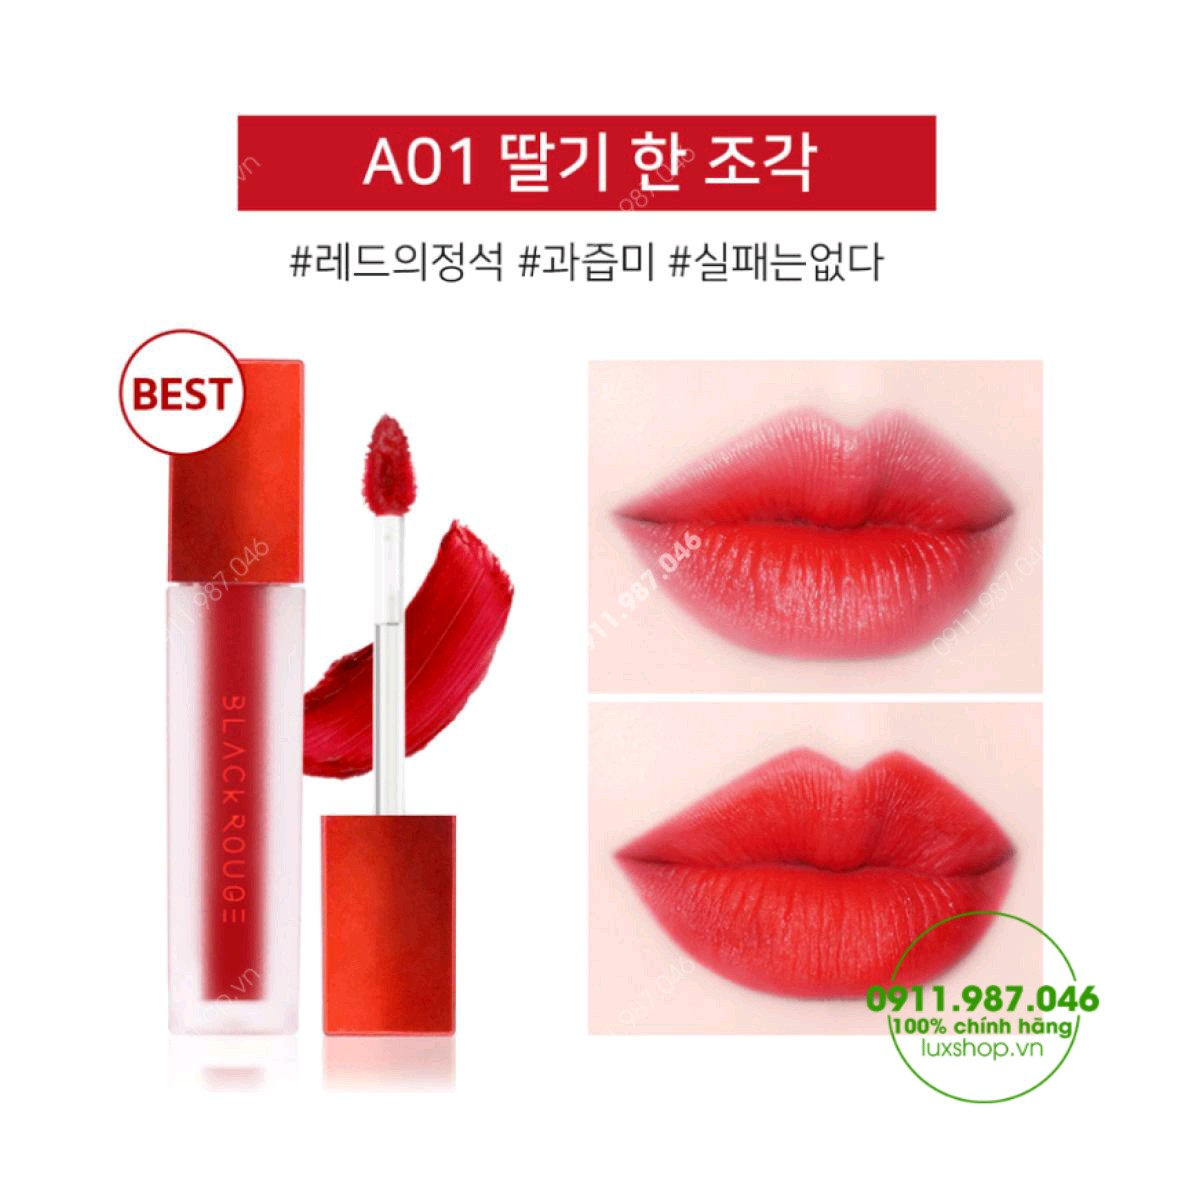 son-kem-li-black-rouge-a01-strawberry-red-do-dau-chinh-hang-han-quoc